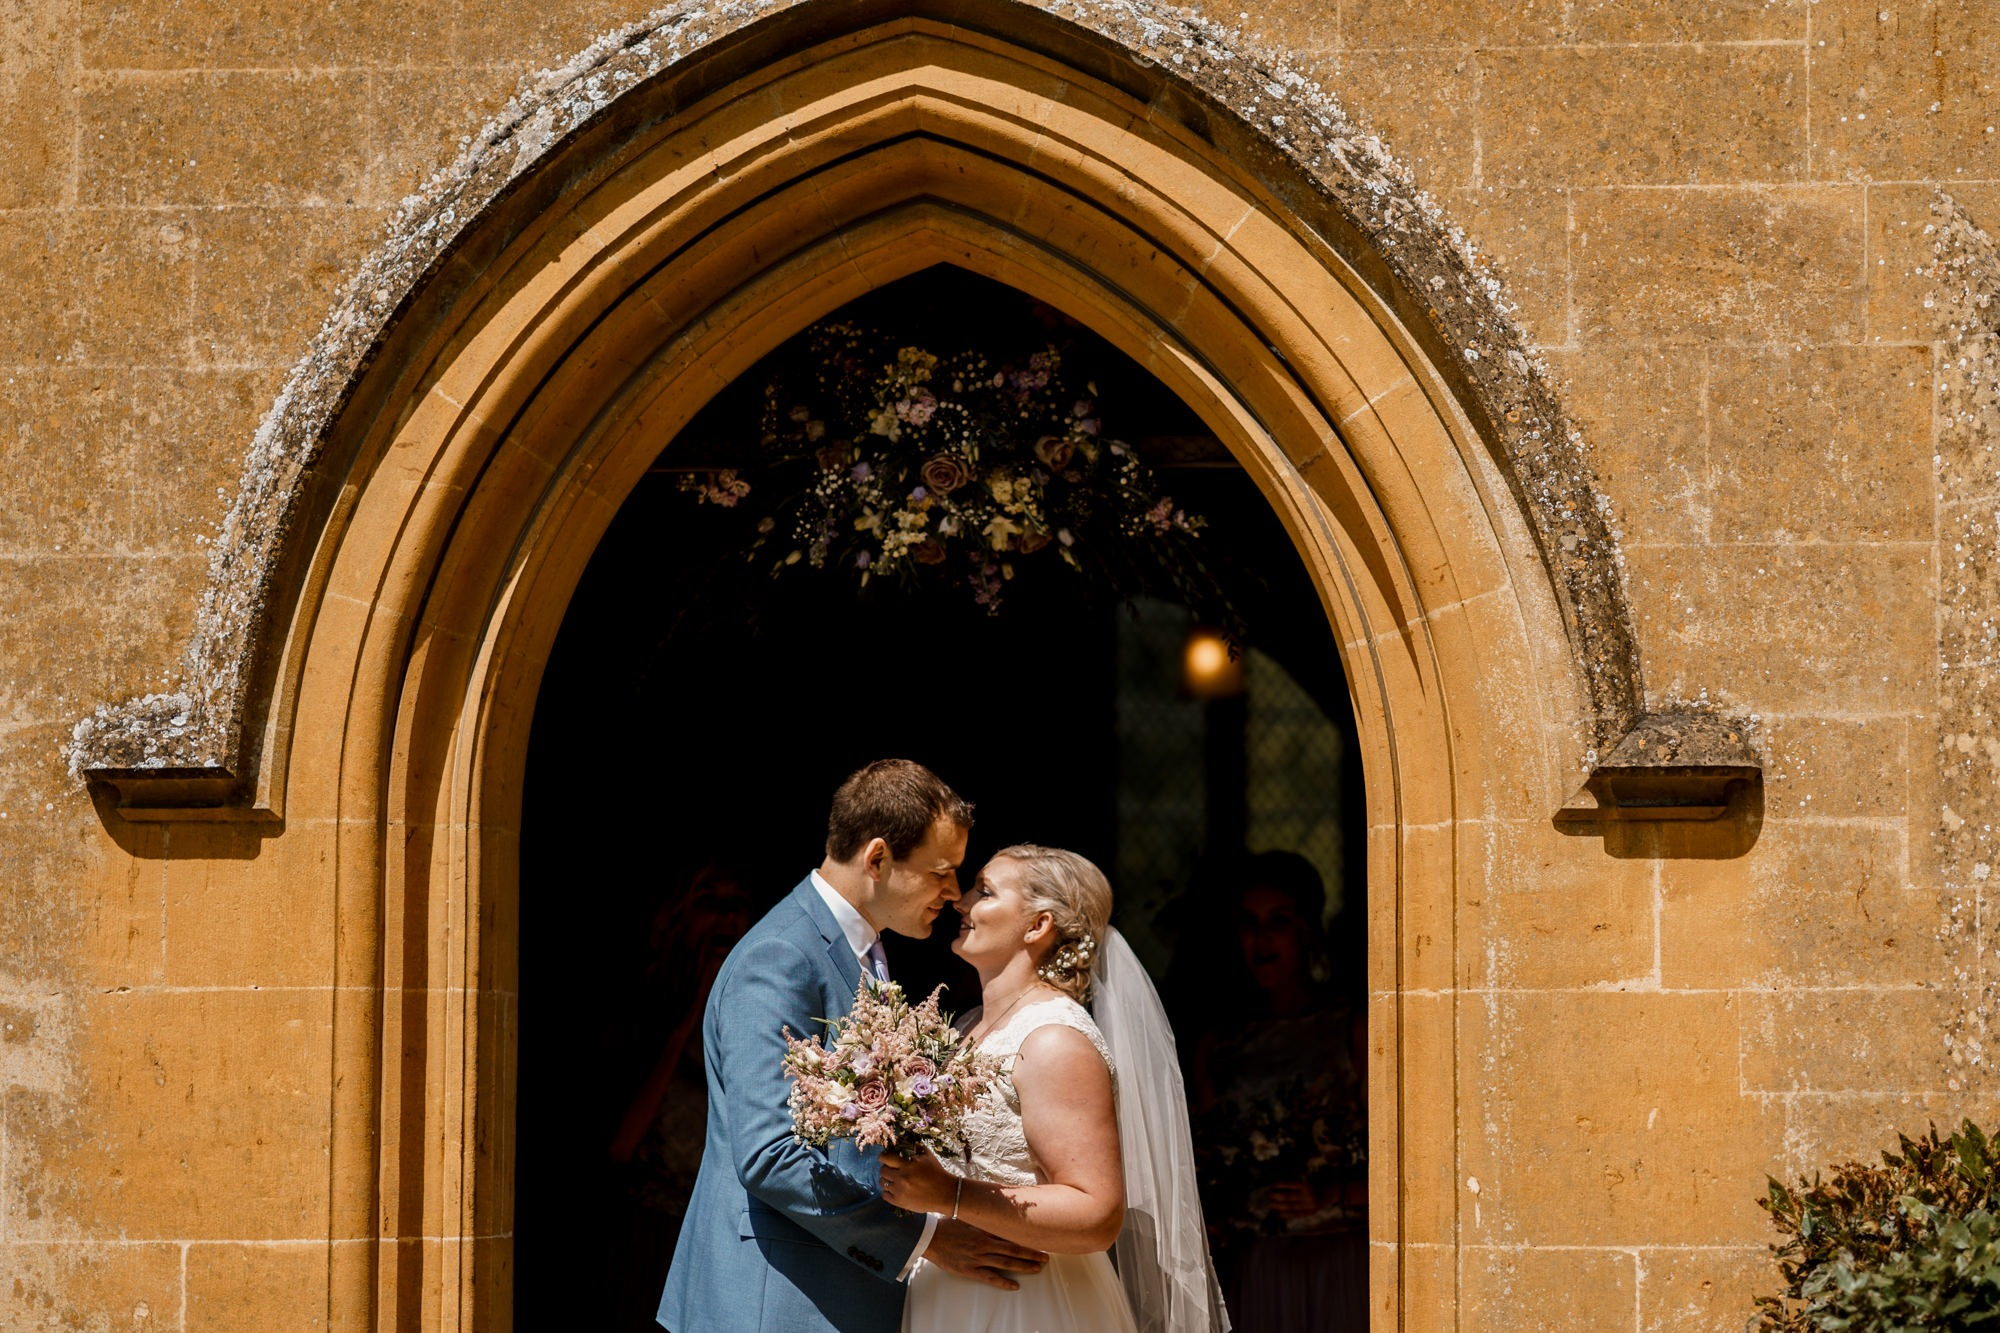 bride and groom face each other in church doorway